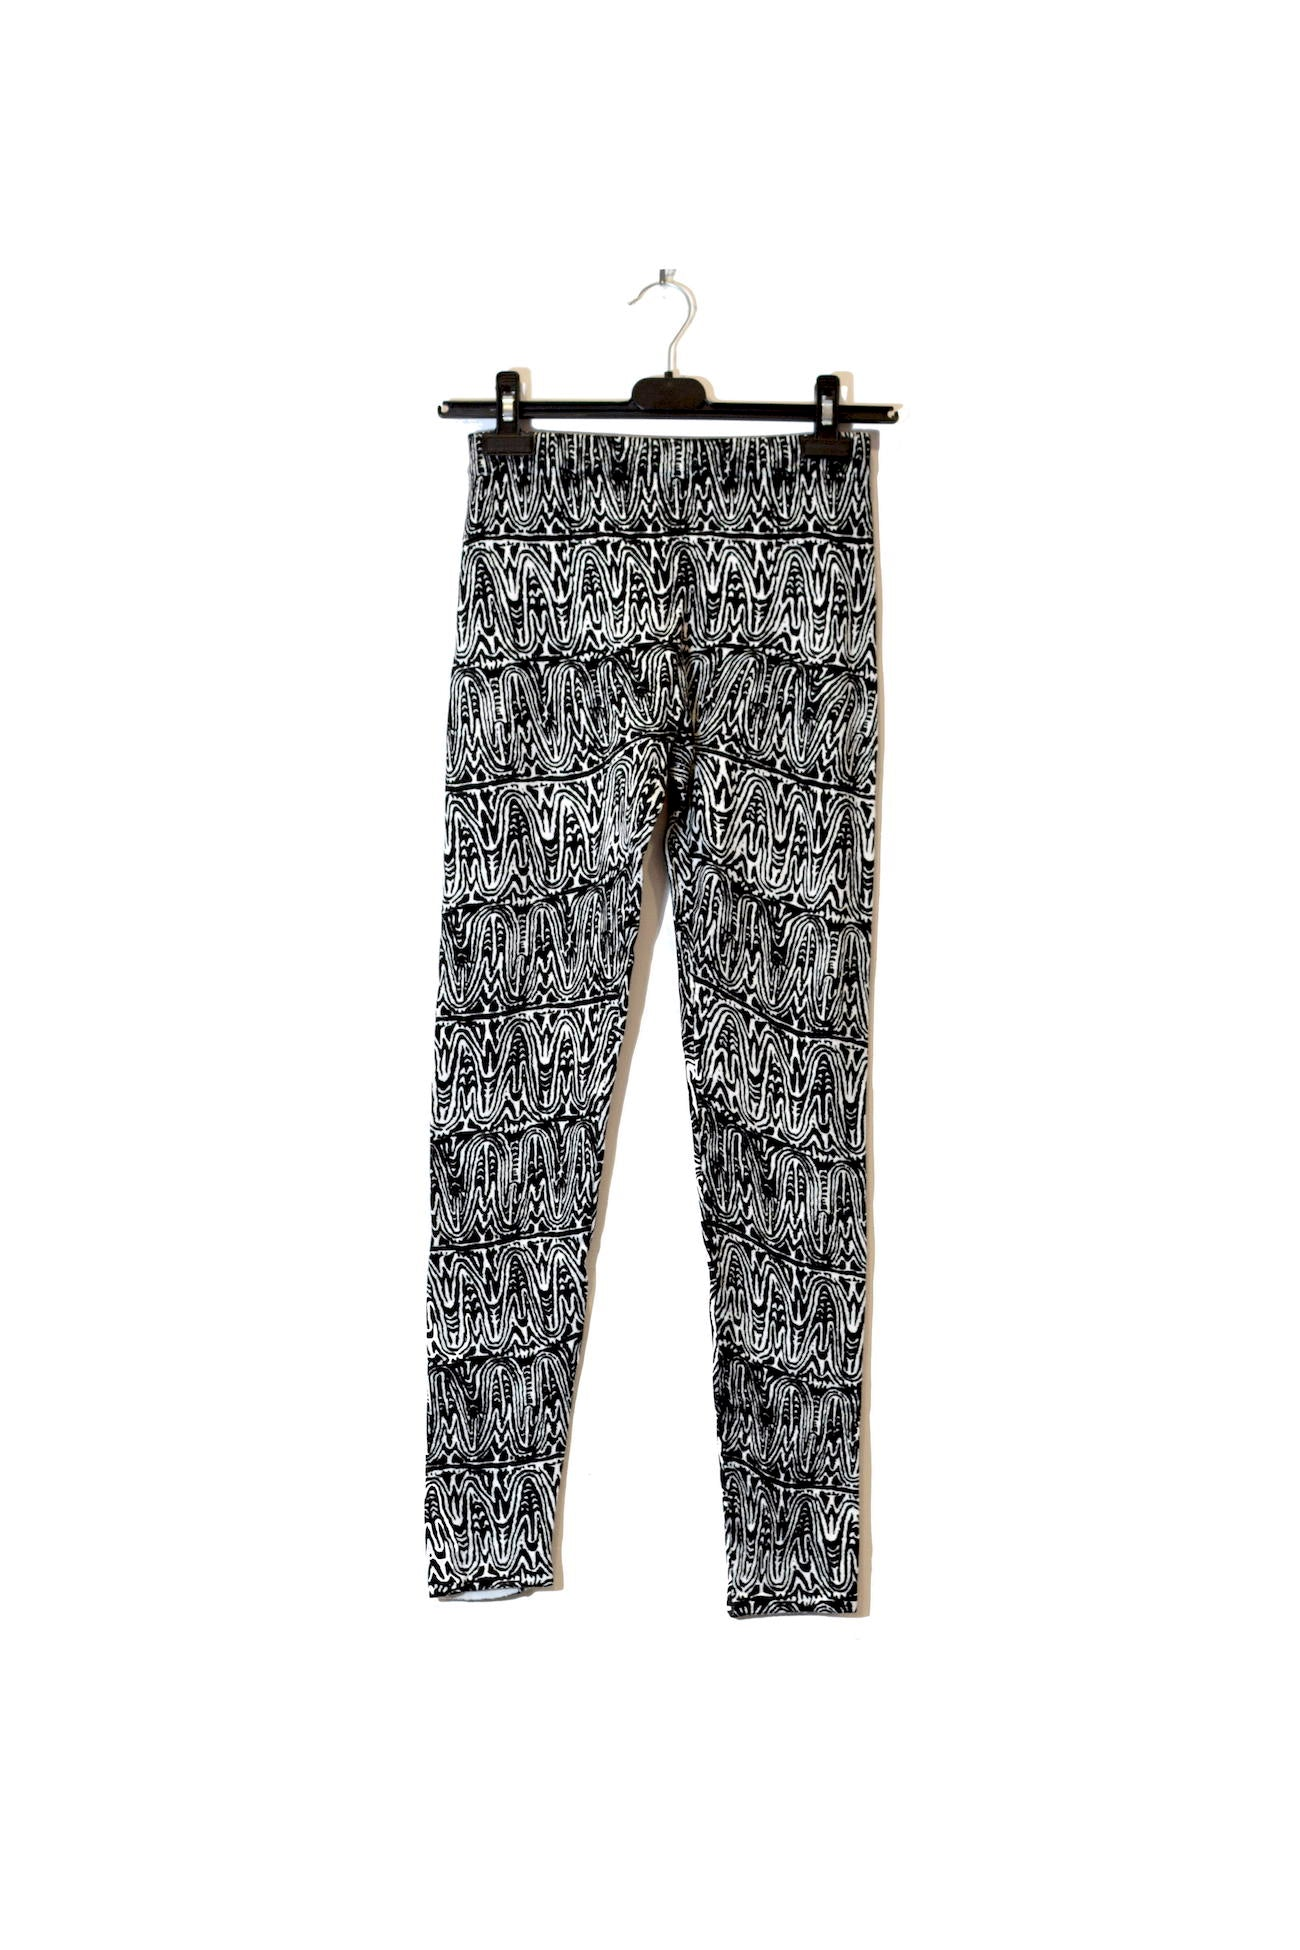 Abstract Printed Leggings With Elastic Waistband